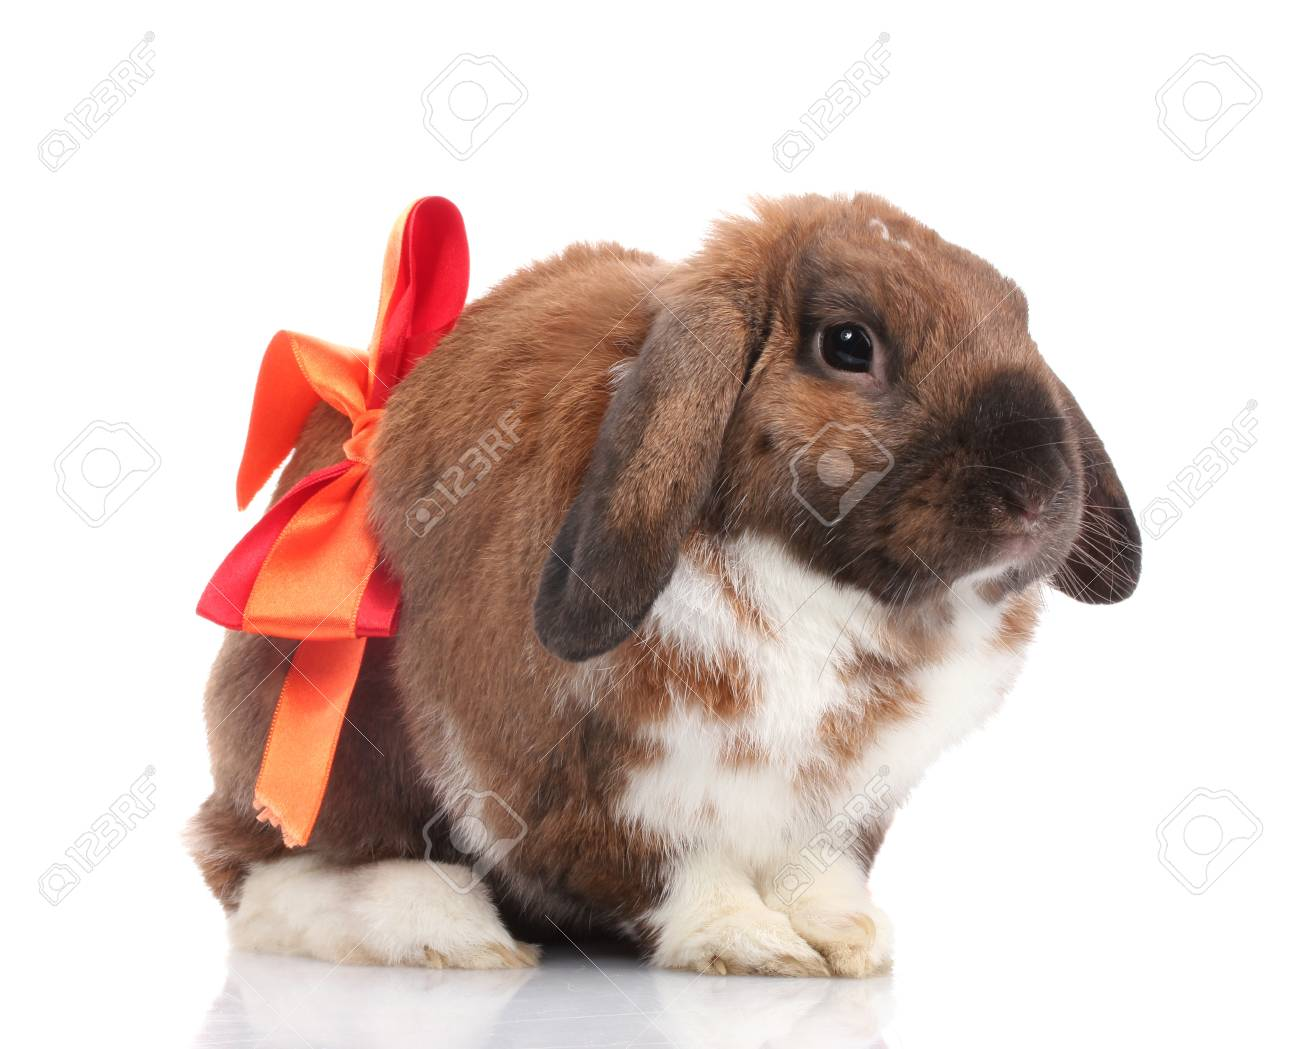 Lop-eared rabbit with red bow isolated on white Stock Photo - 13994239